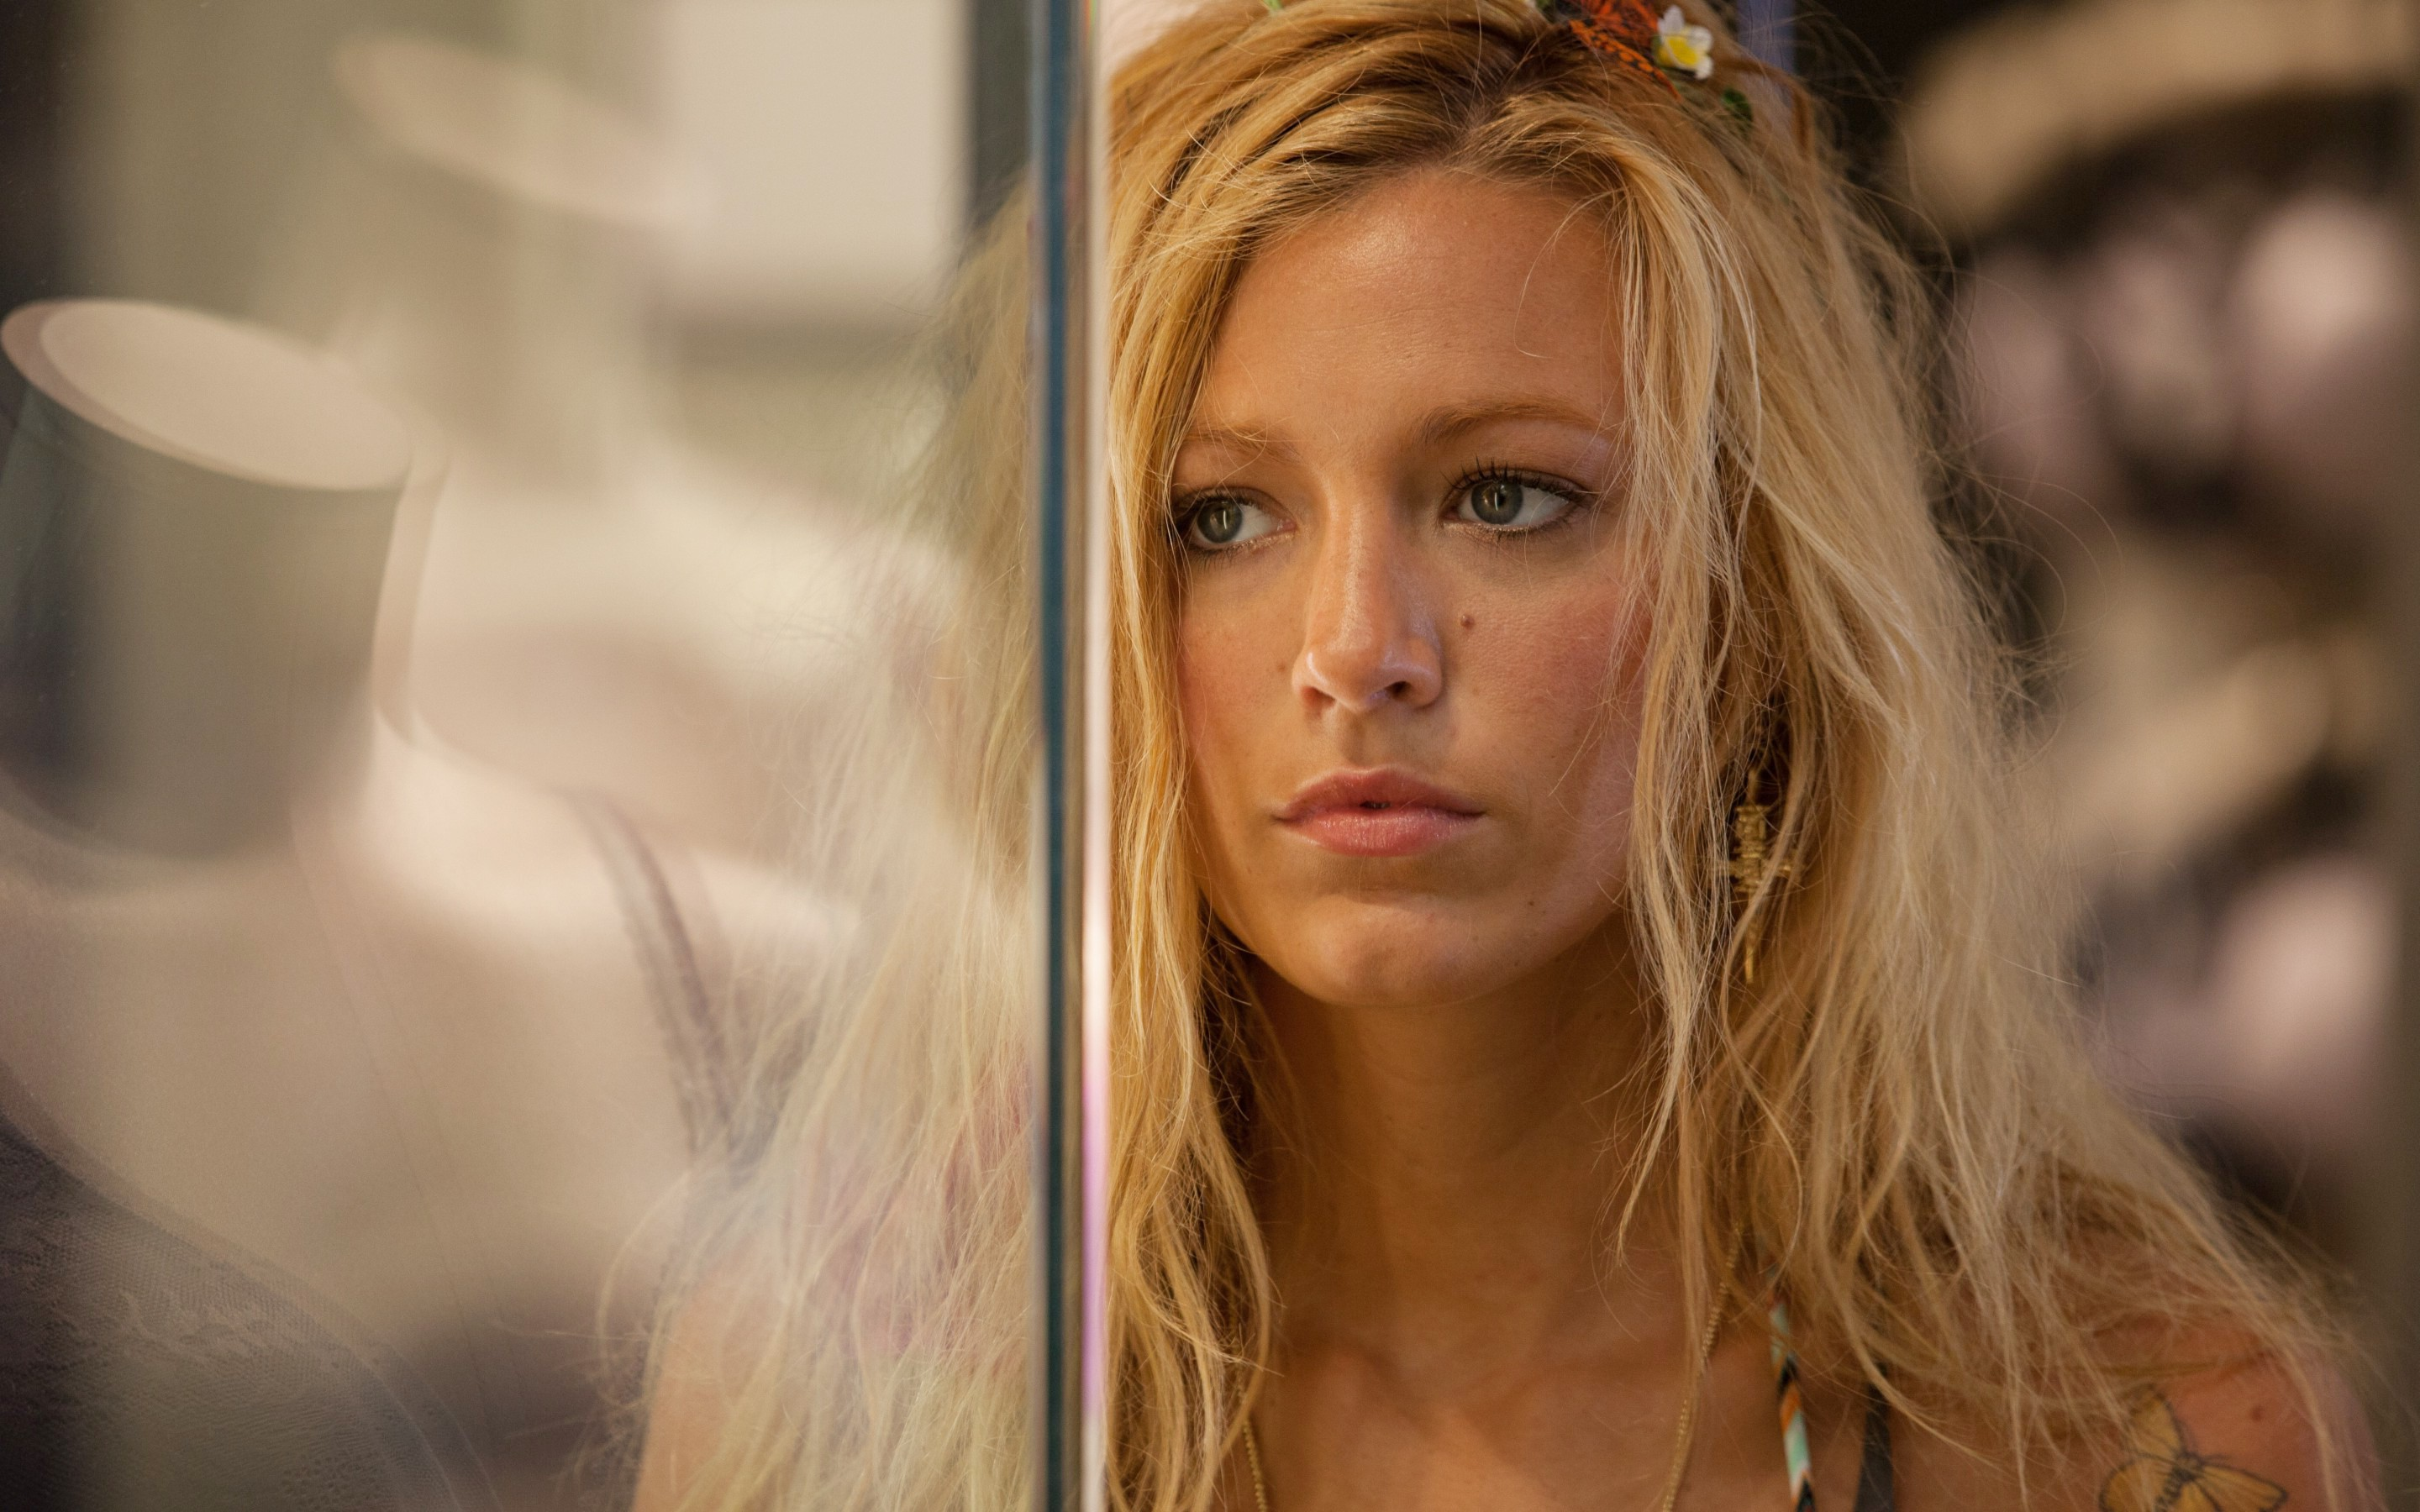 Lovely Blake Lively Face Free Background Hd Mobile Pictures